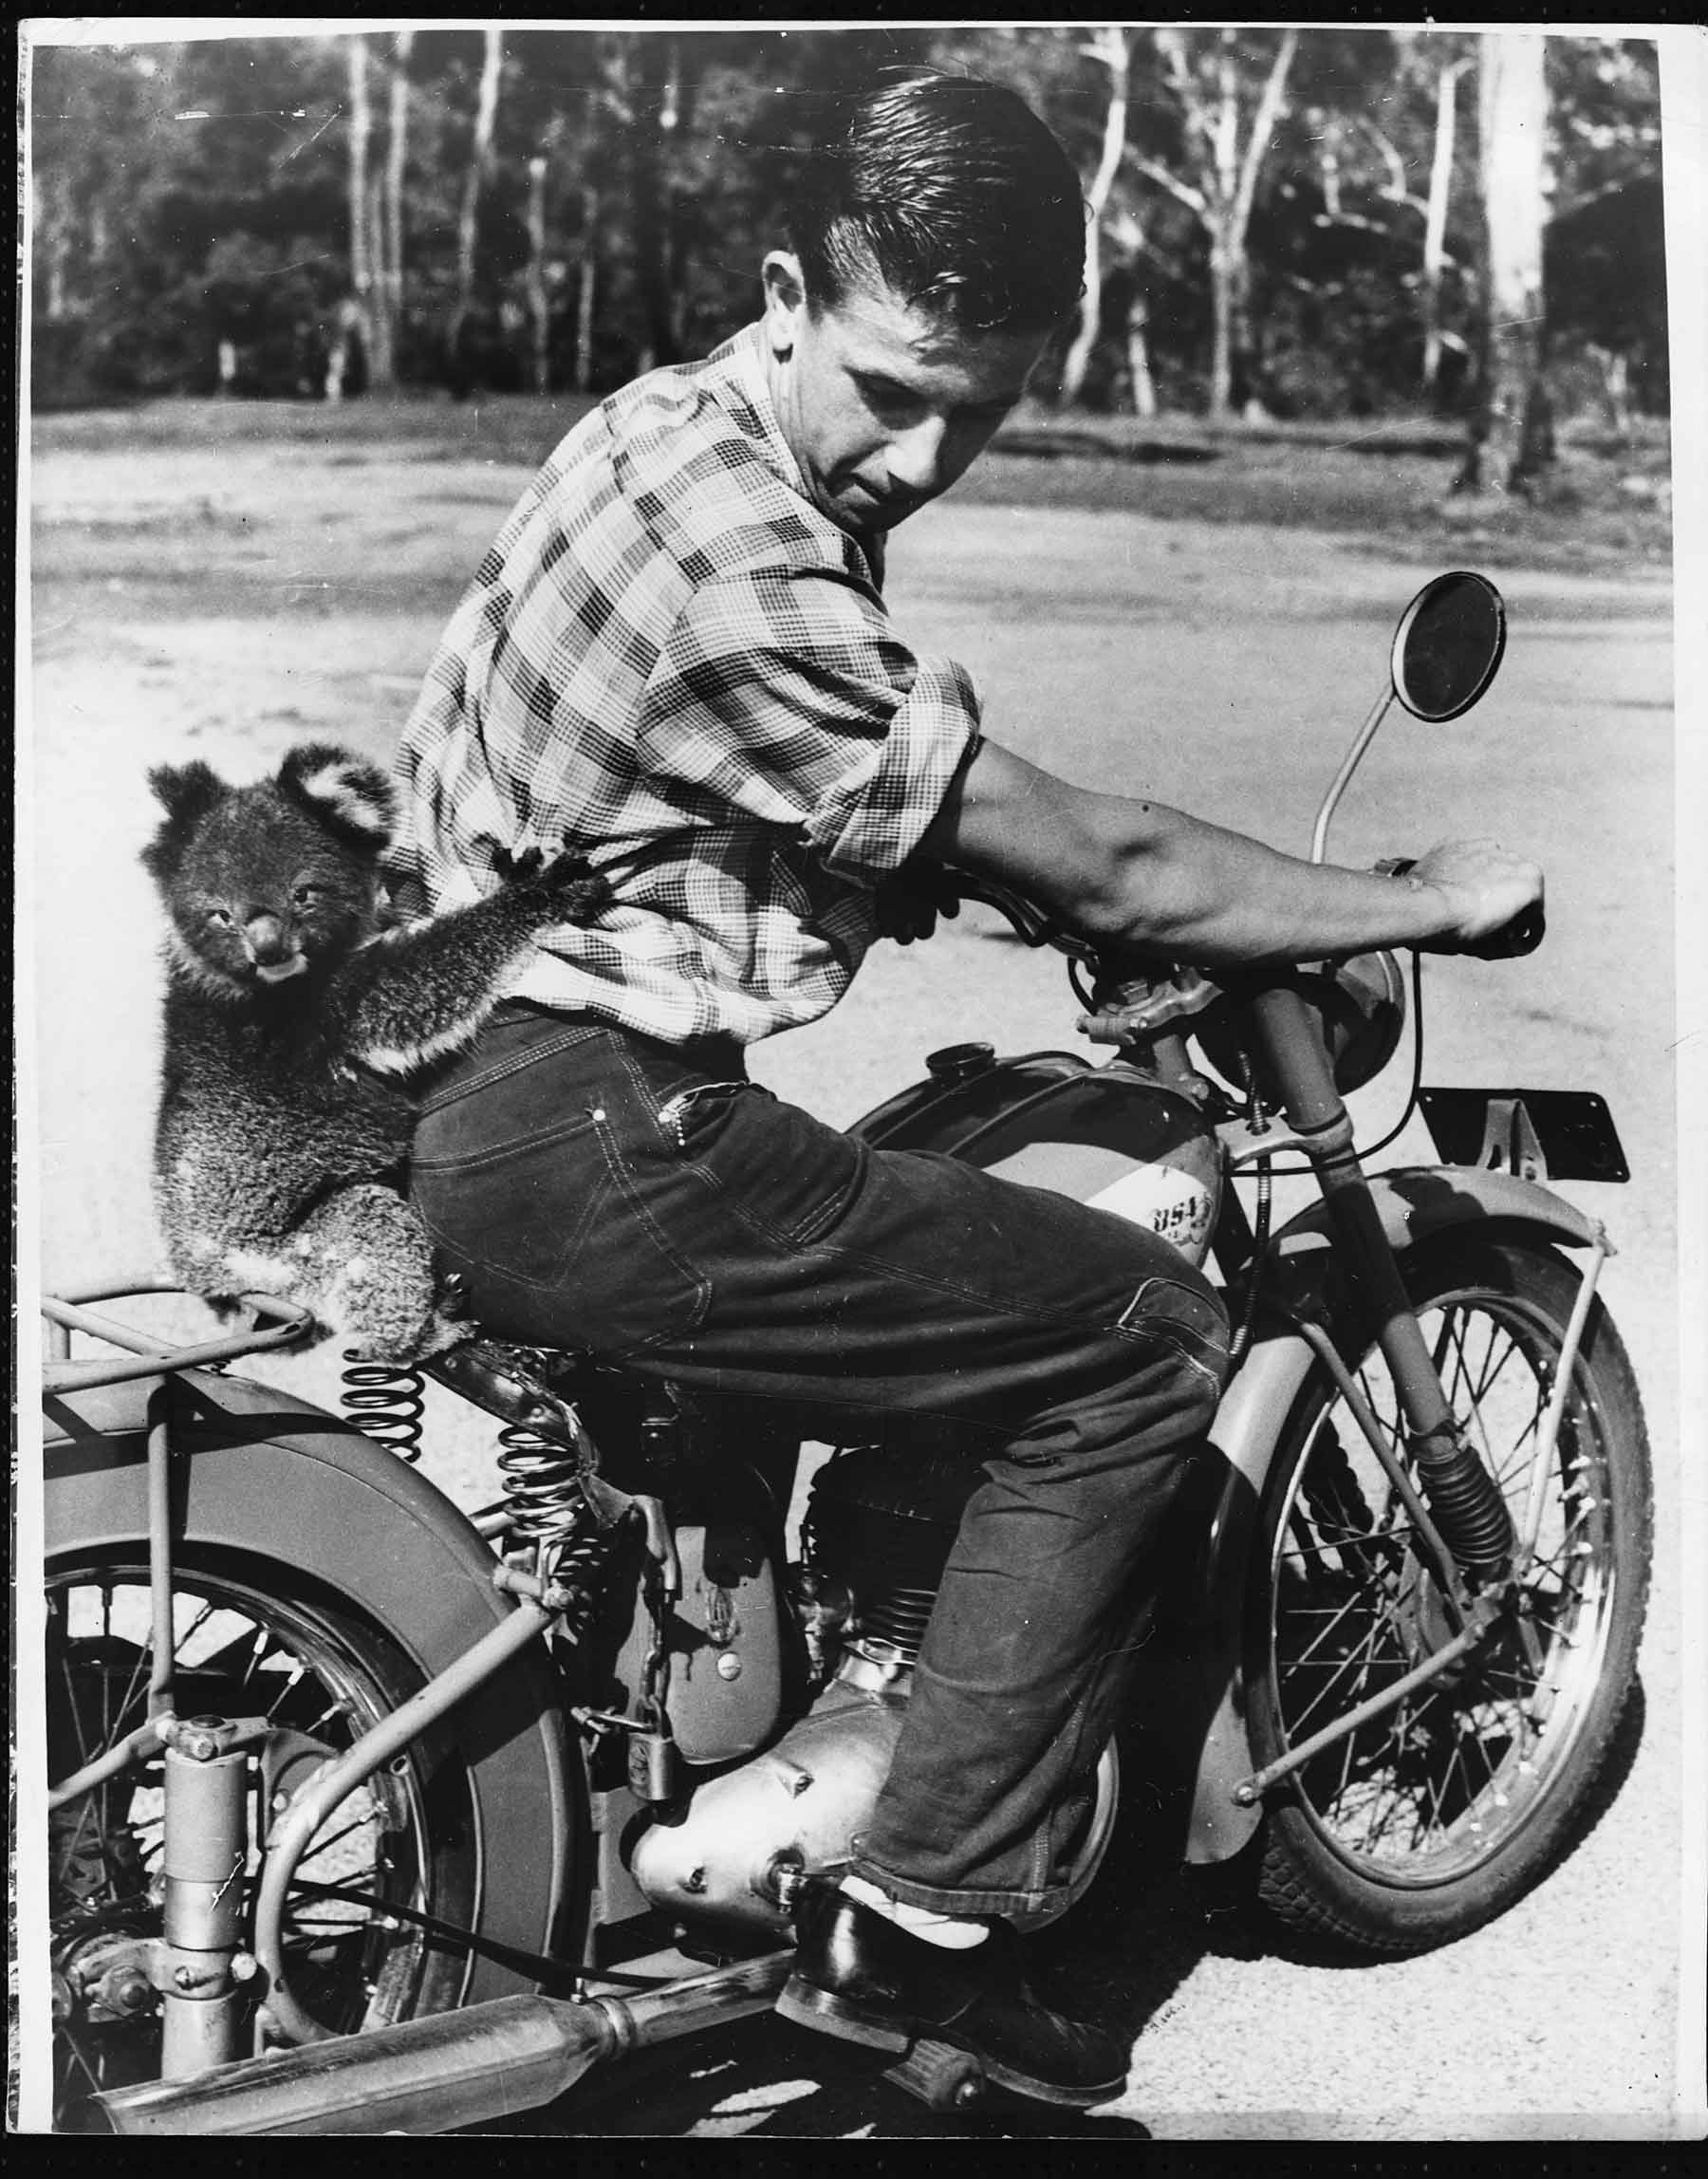 A pet koala, named Cuthbert, loves riding on his owner Ian's BSA in this photo from Australia in 1960.